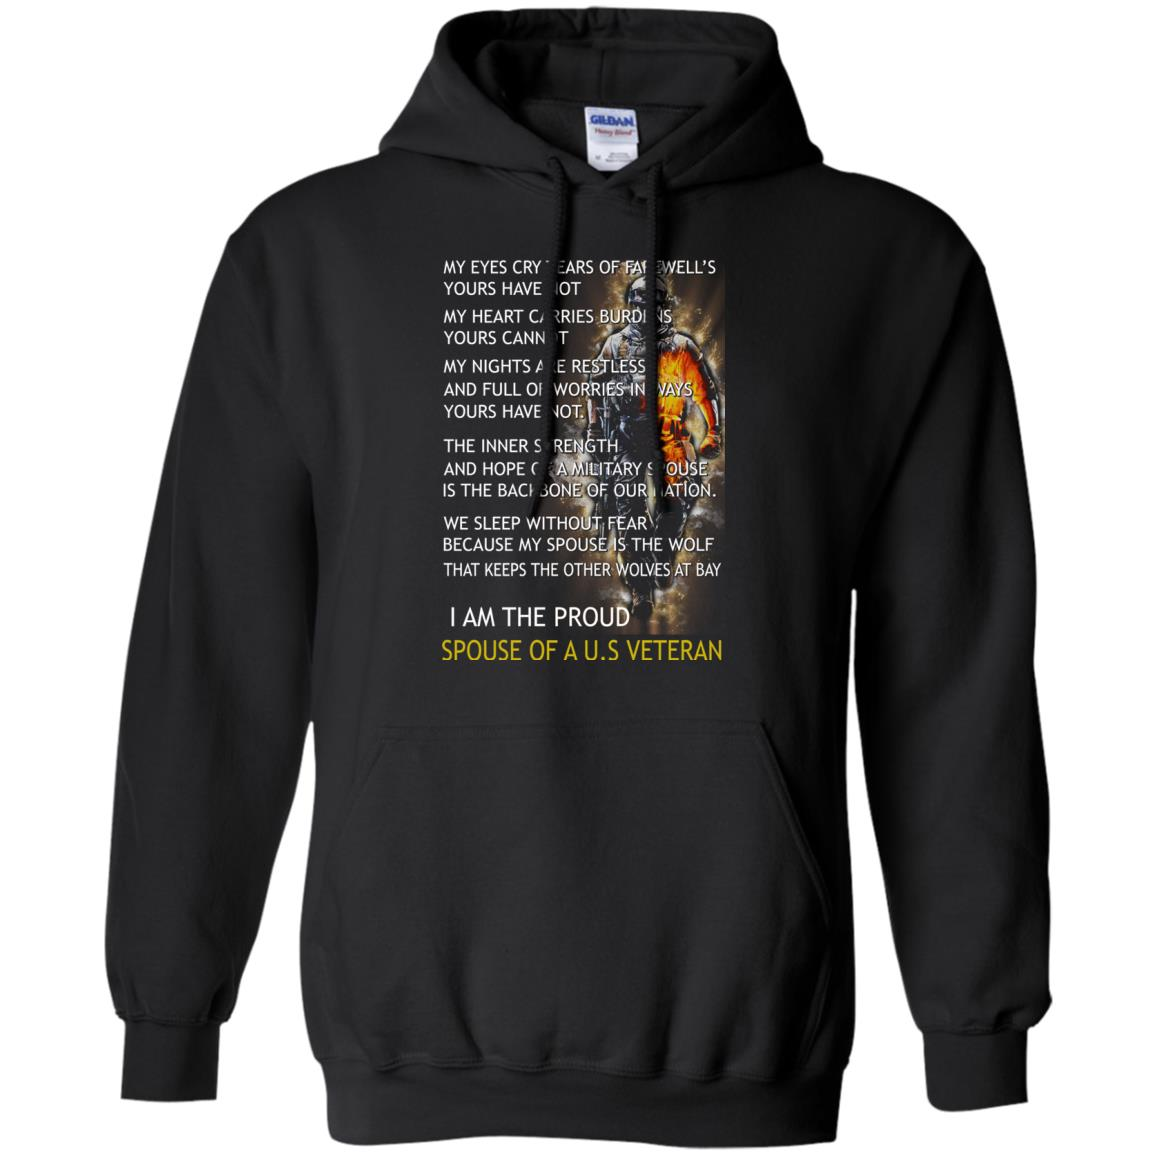 image 770px I am the proud spouse of a U.S Veteran, my eyes cry tears of farewell's t shirt